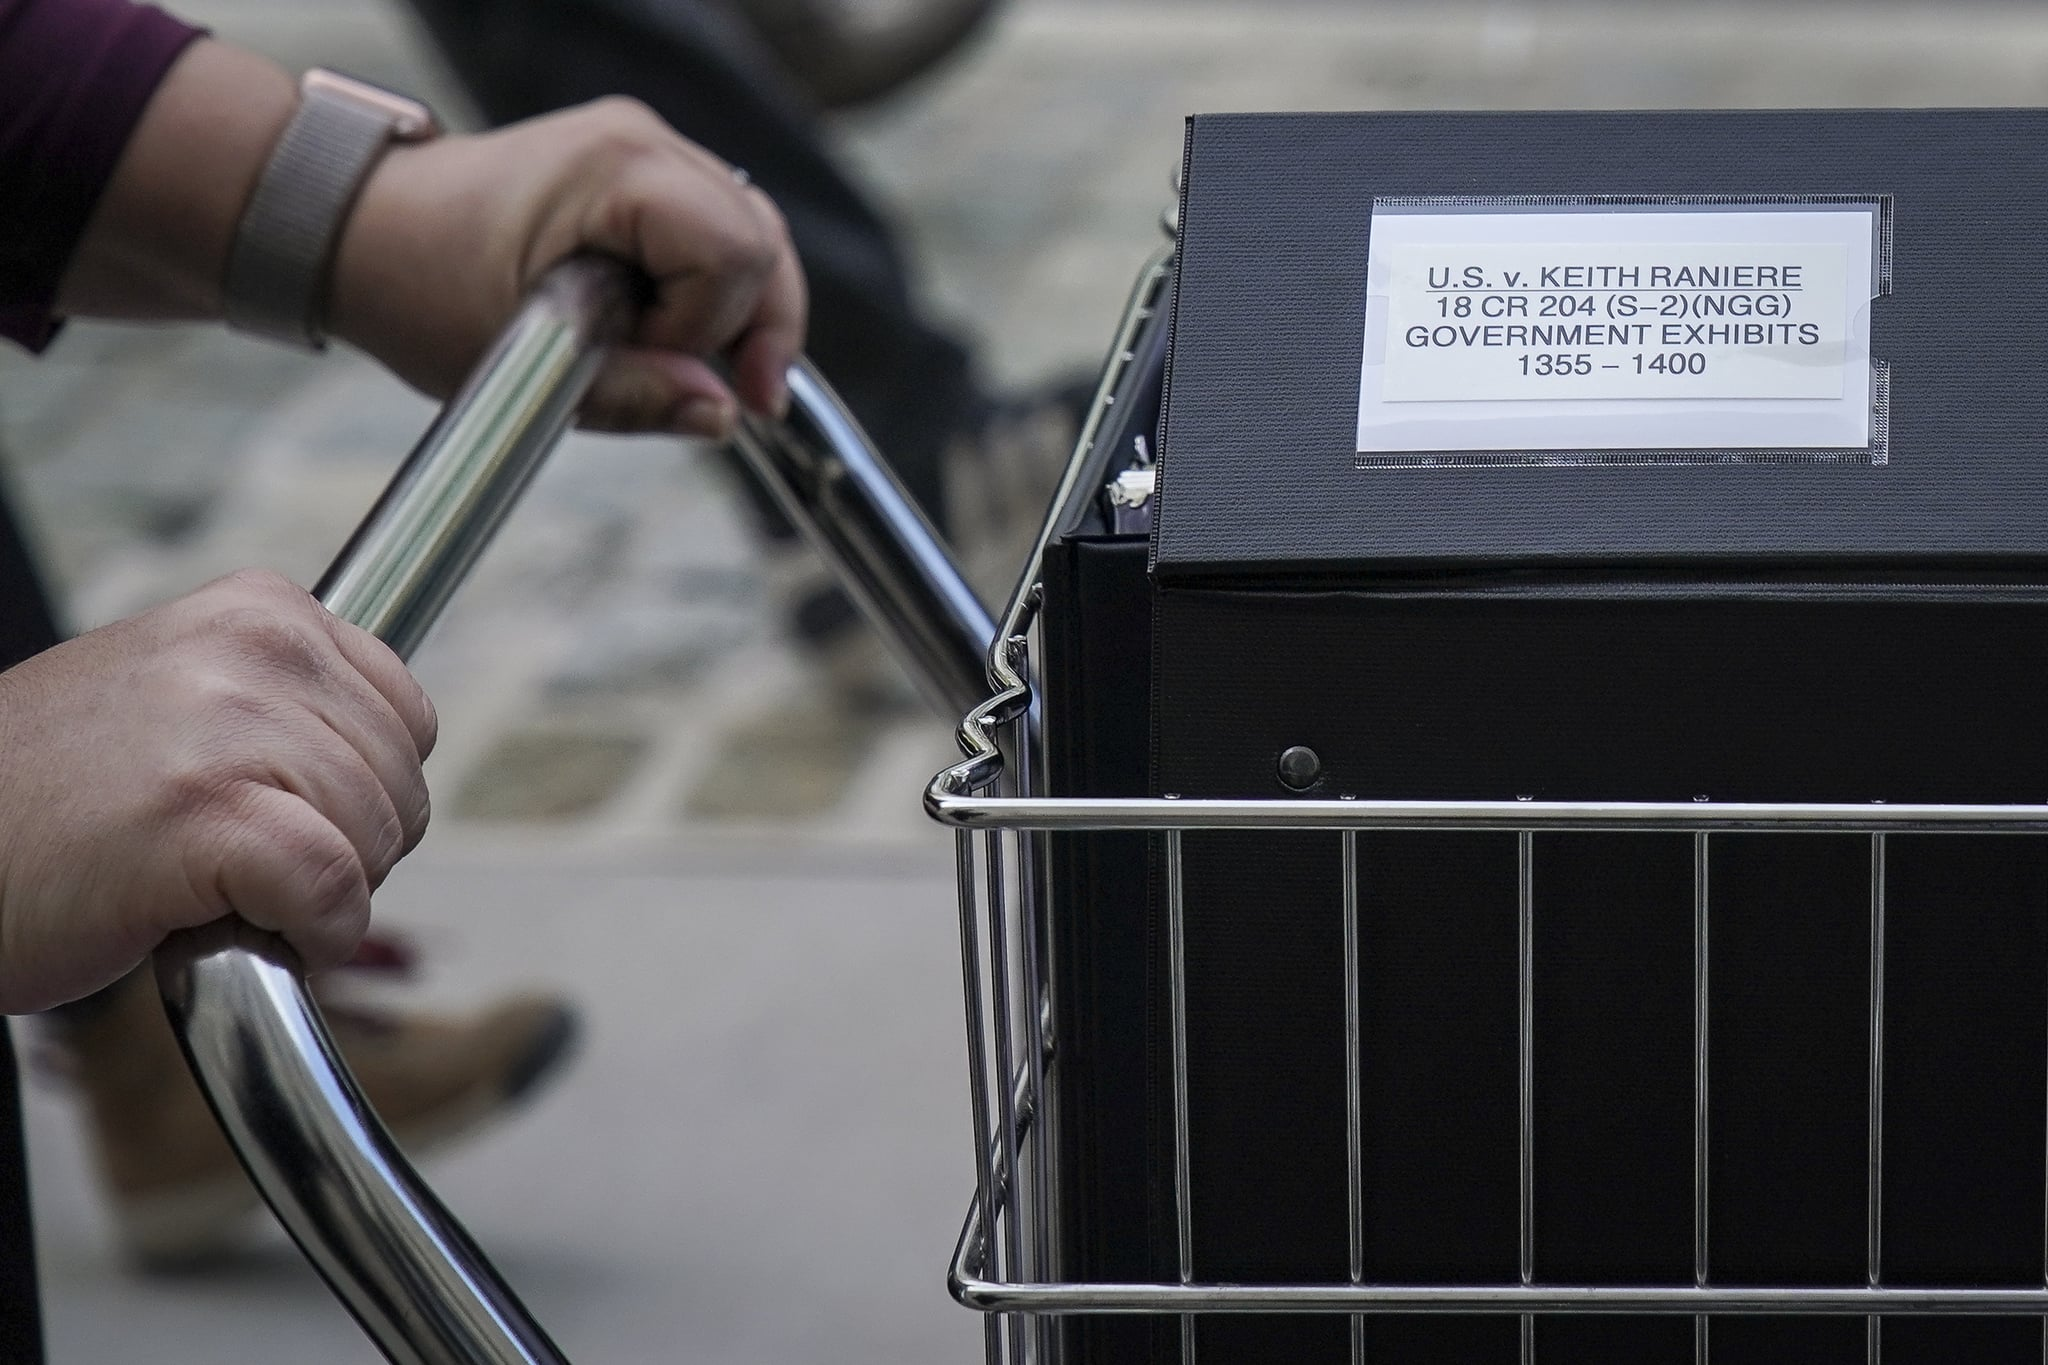 NEW YORK, NY - MAY 7: Staff and members of the prosecution team push carts full of court documents related to the U.S. v. Keith Raniere case as they arrive at the U.S. District Court for the Eastern District of New York a, May 7, 2019 in the Brooklyn borough of New York City. Opening arguments begin on Tuesday morning for the trial of Keith Raniere, the leader of the alleged sex cult NXIVM. Raniere, who could potentially face life in prison, has pleaded not guilty to sex trafficking, racketeering and other charges. (Photo by Drew Angerer/Getty Images)